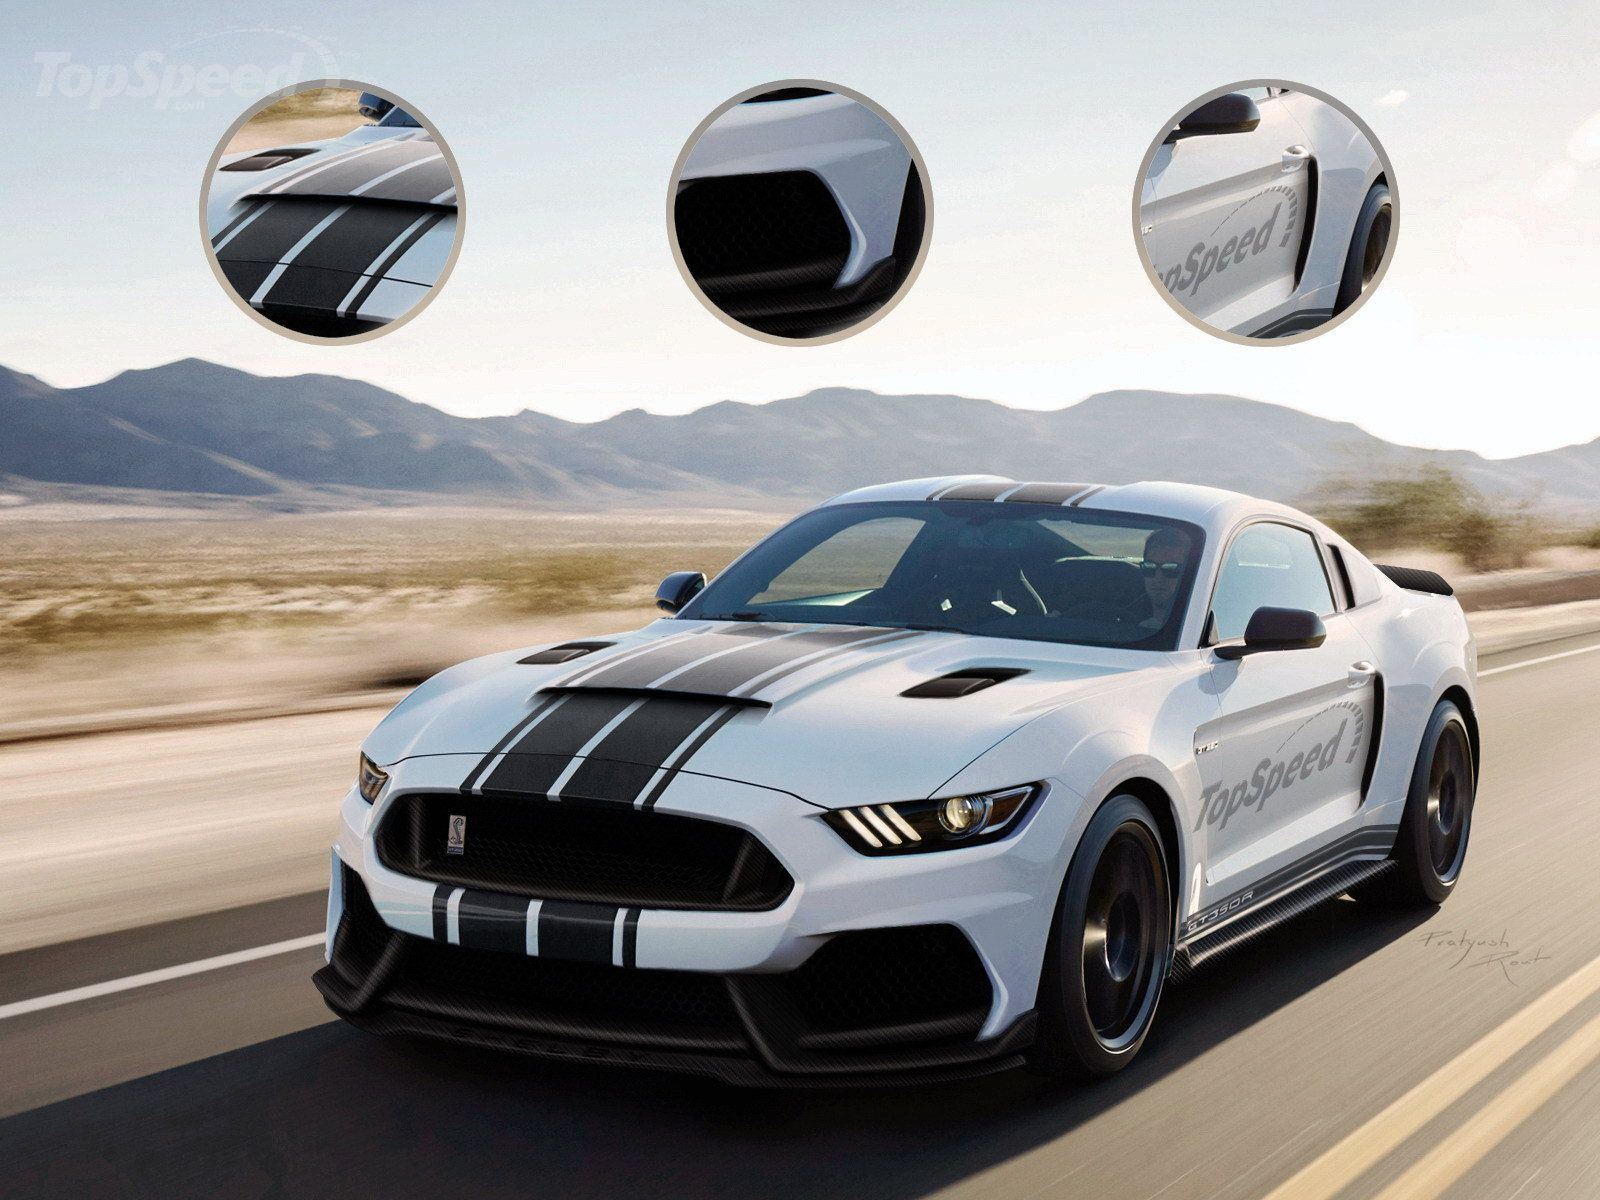 2016 ford shelby gt350r mustang picture - doc608633 | cars